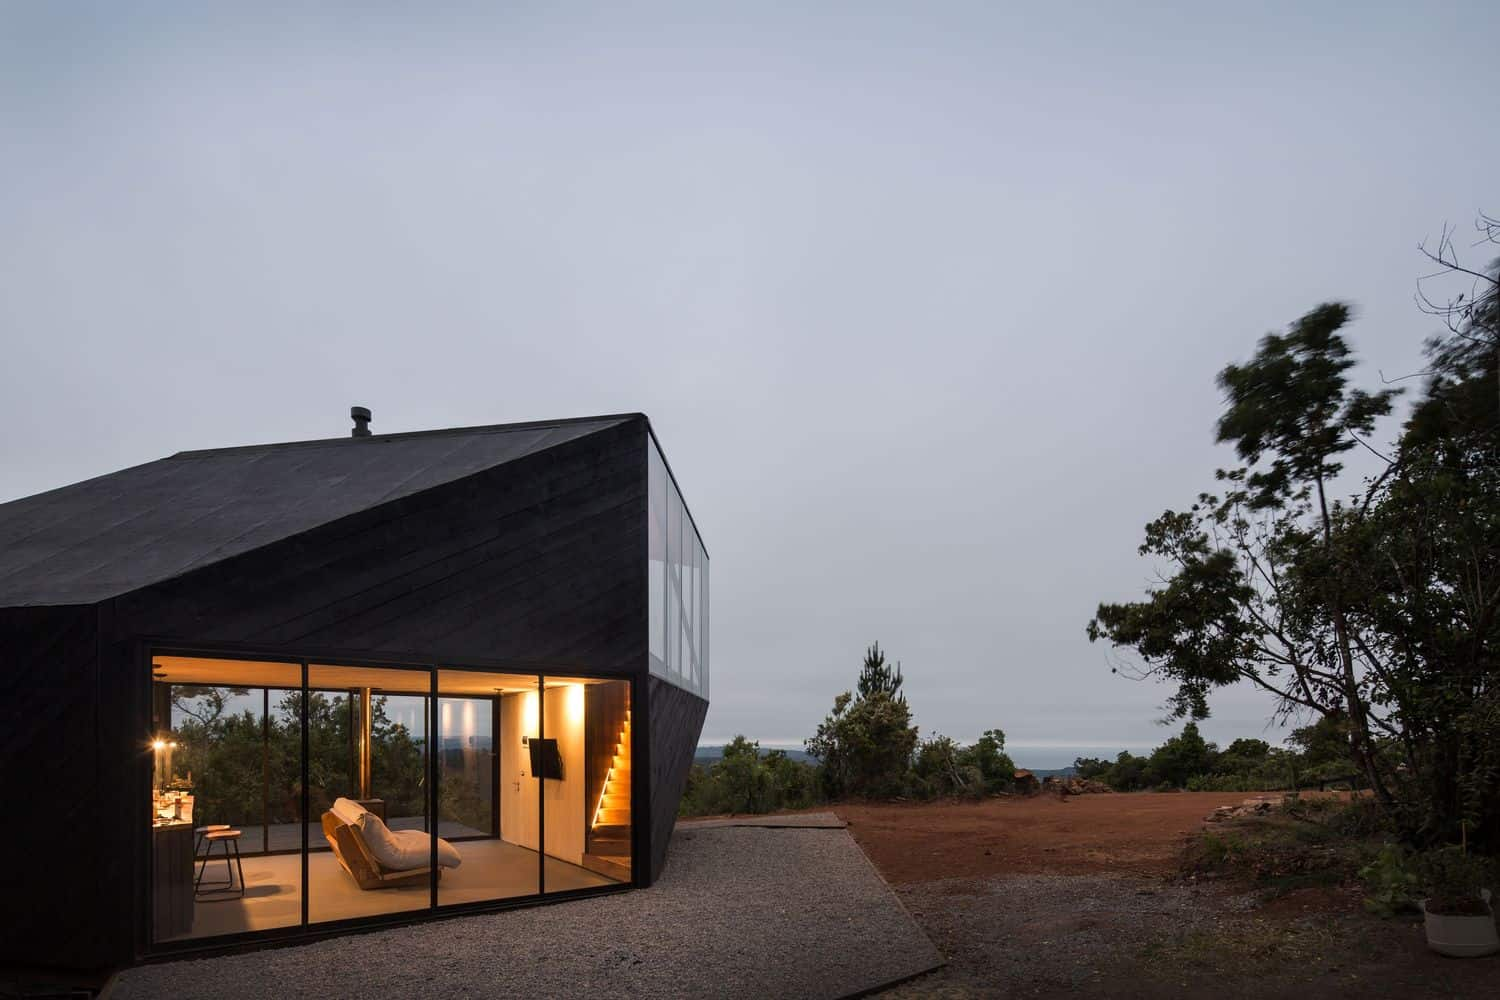 modern home designs, house design with black exterior, two-blocked house